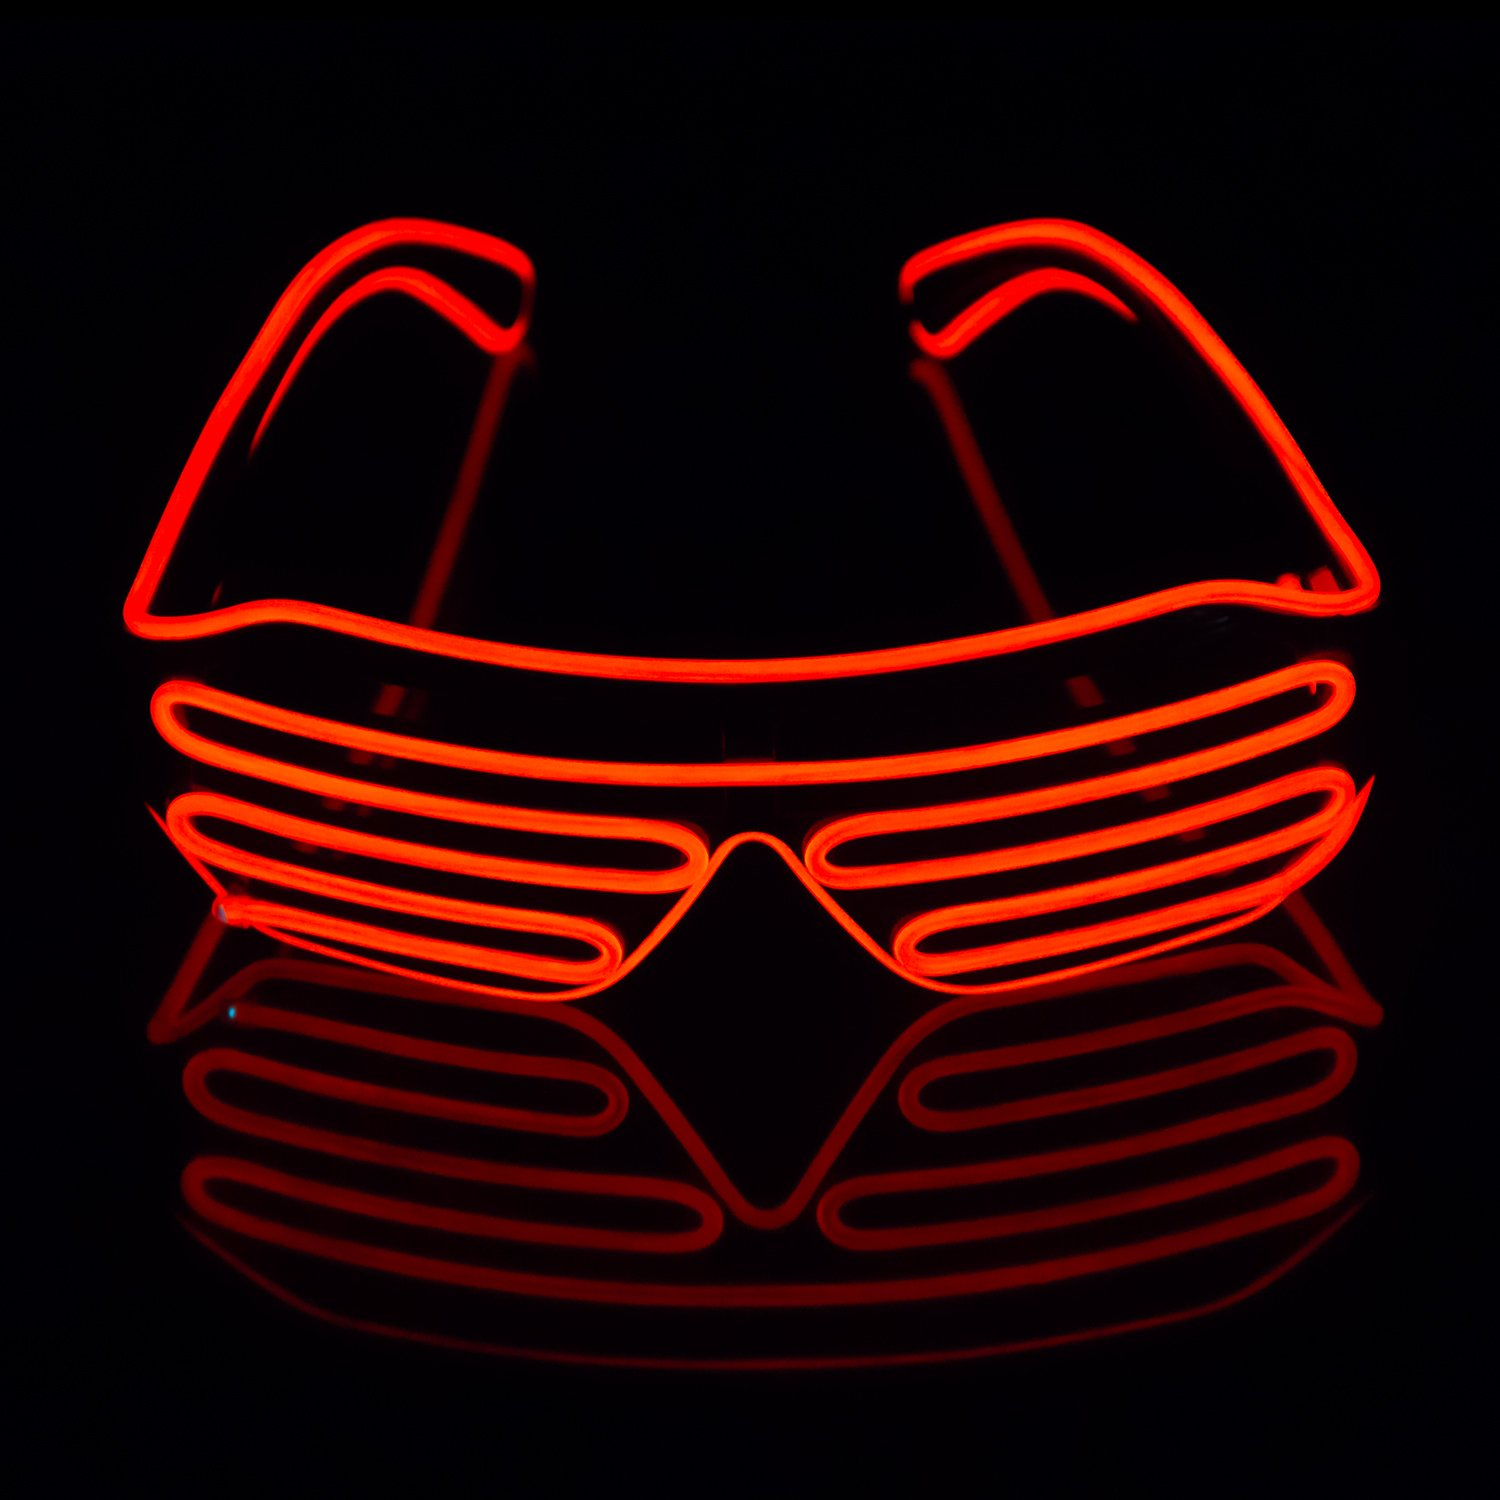 Led Light Up Neon Shutter Party Glasses for Parties Decorations(Red)